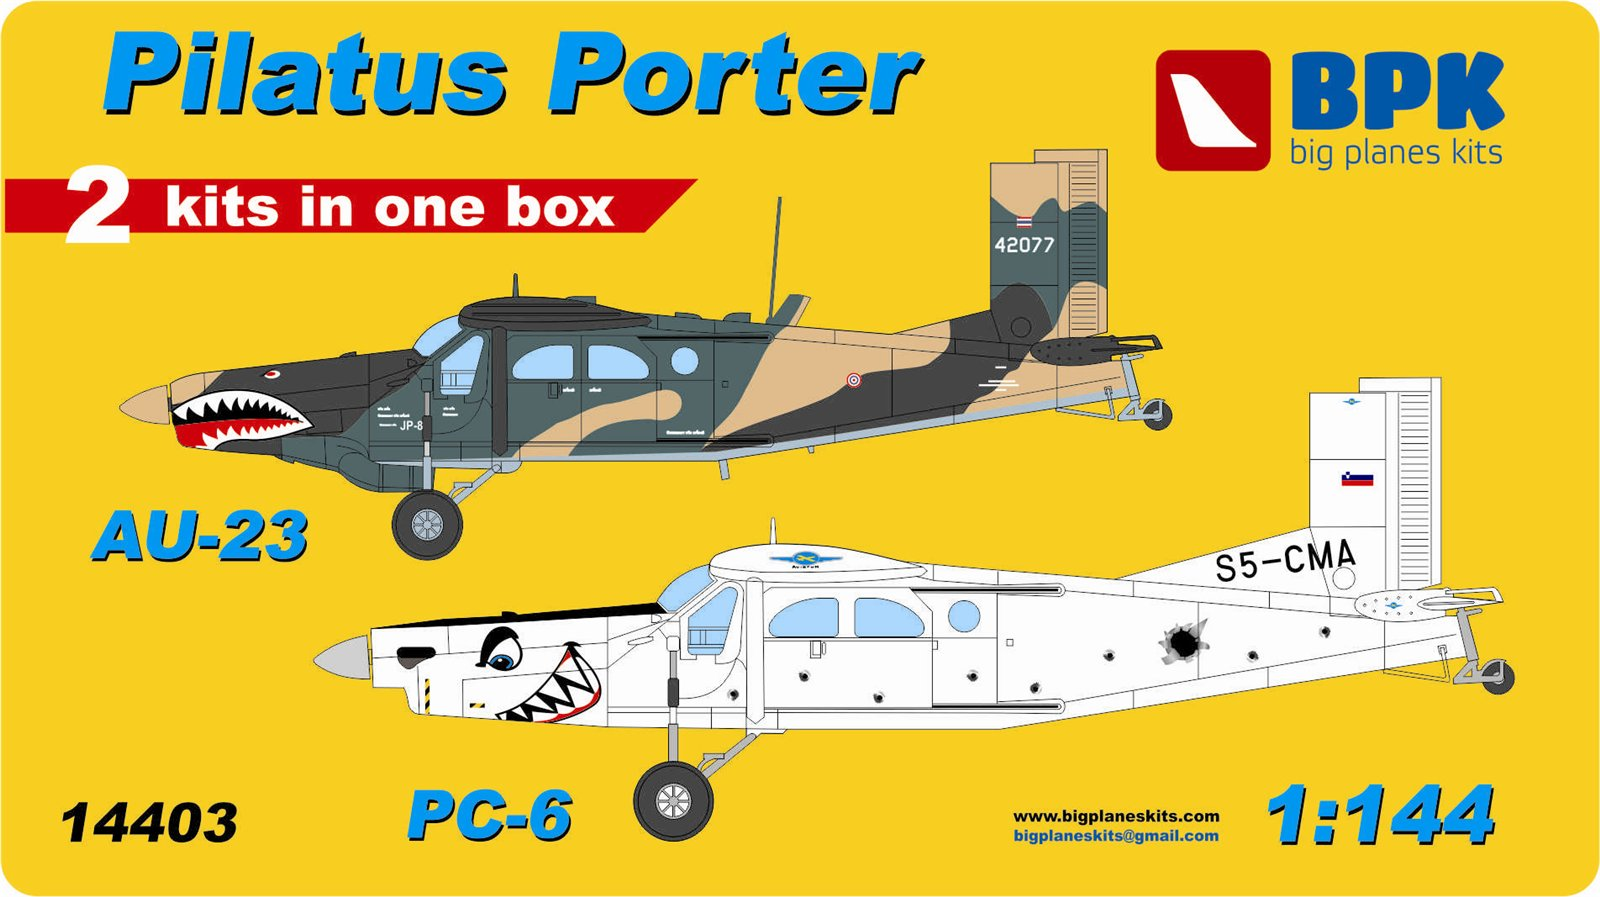 BPK 1/144 Pilatus Porter PC-6 / AU-23 Swiss utility aircraft, 2-in-1 kit